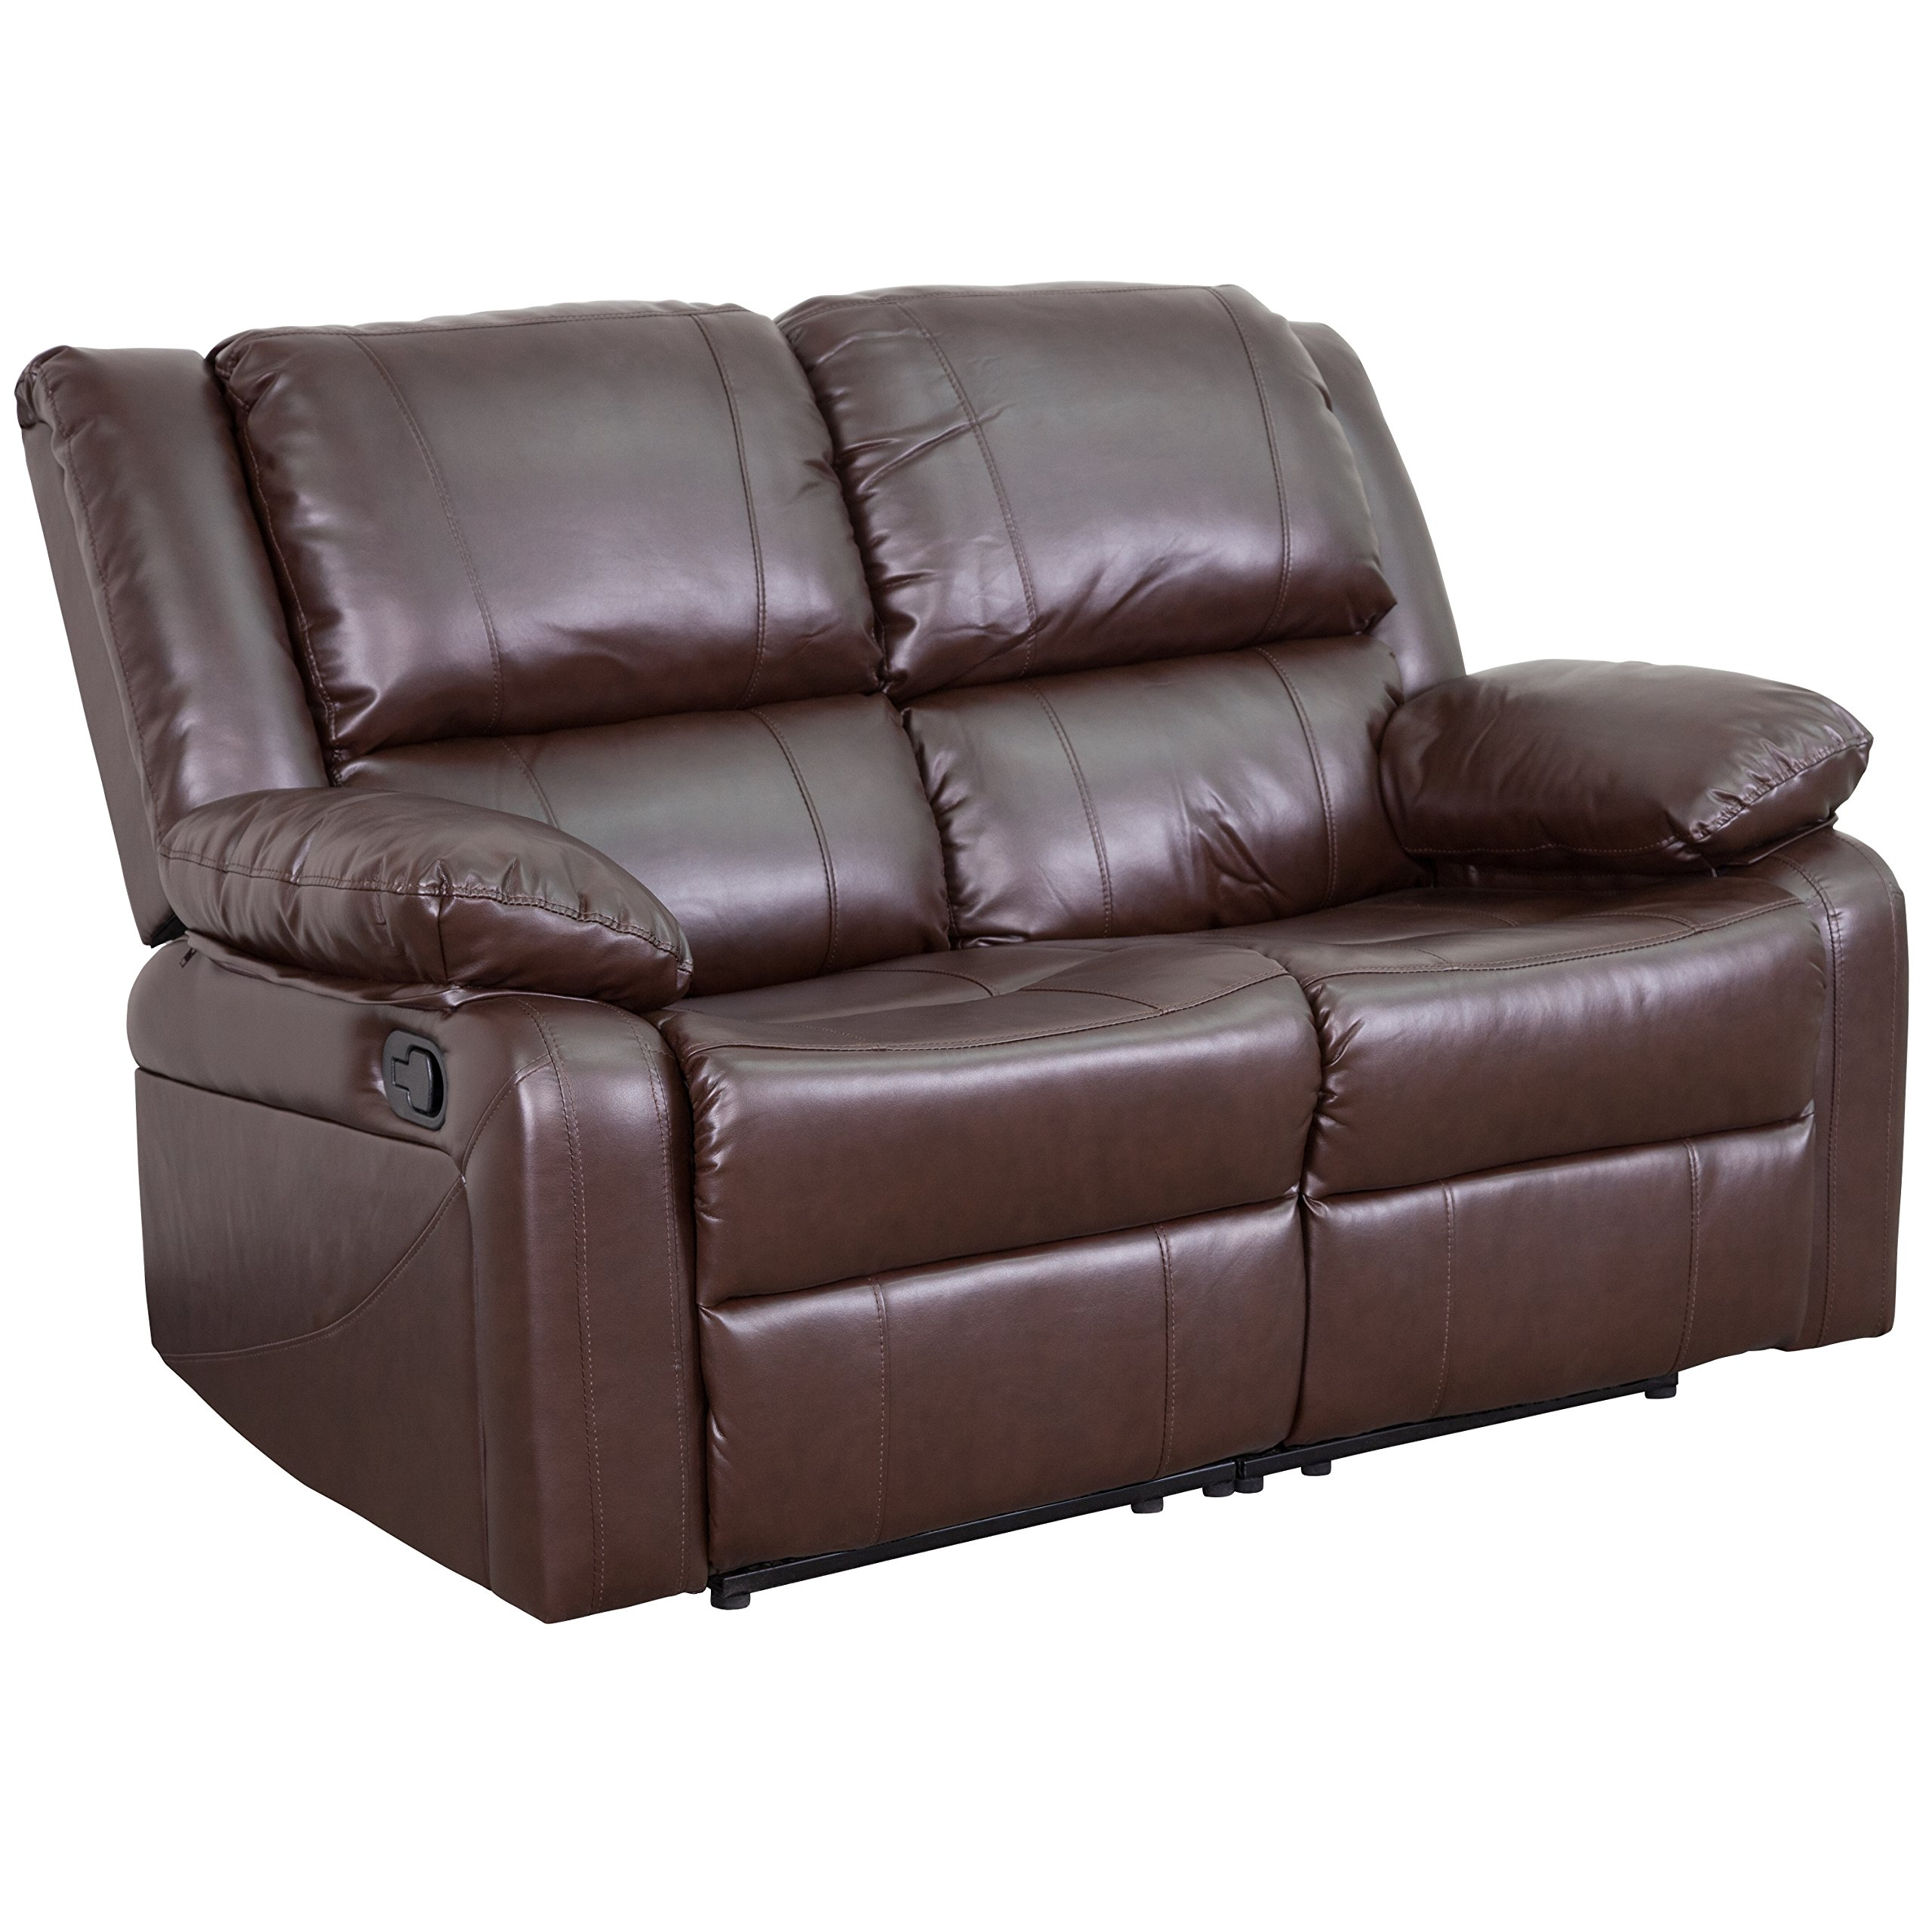 Flash Furniture Harmony Series Brown Leather Loveseat with Two Built-In Recliners by Flash Furniture